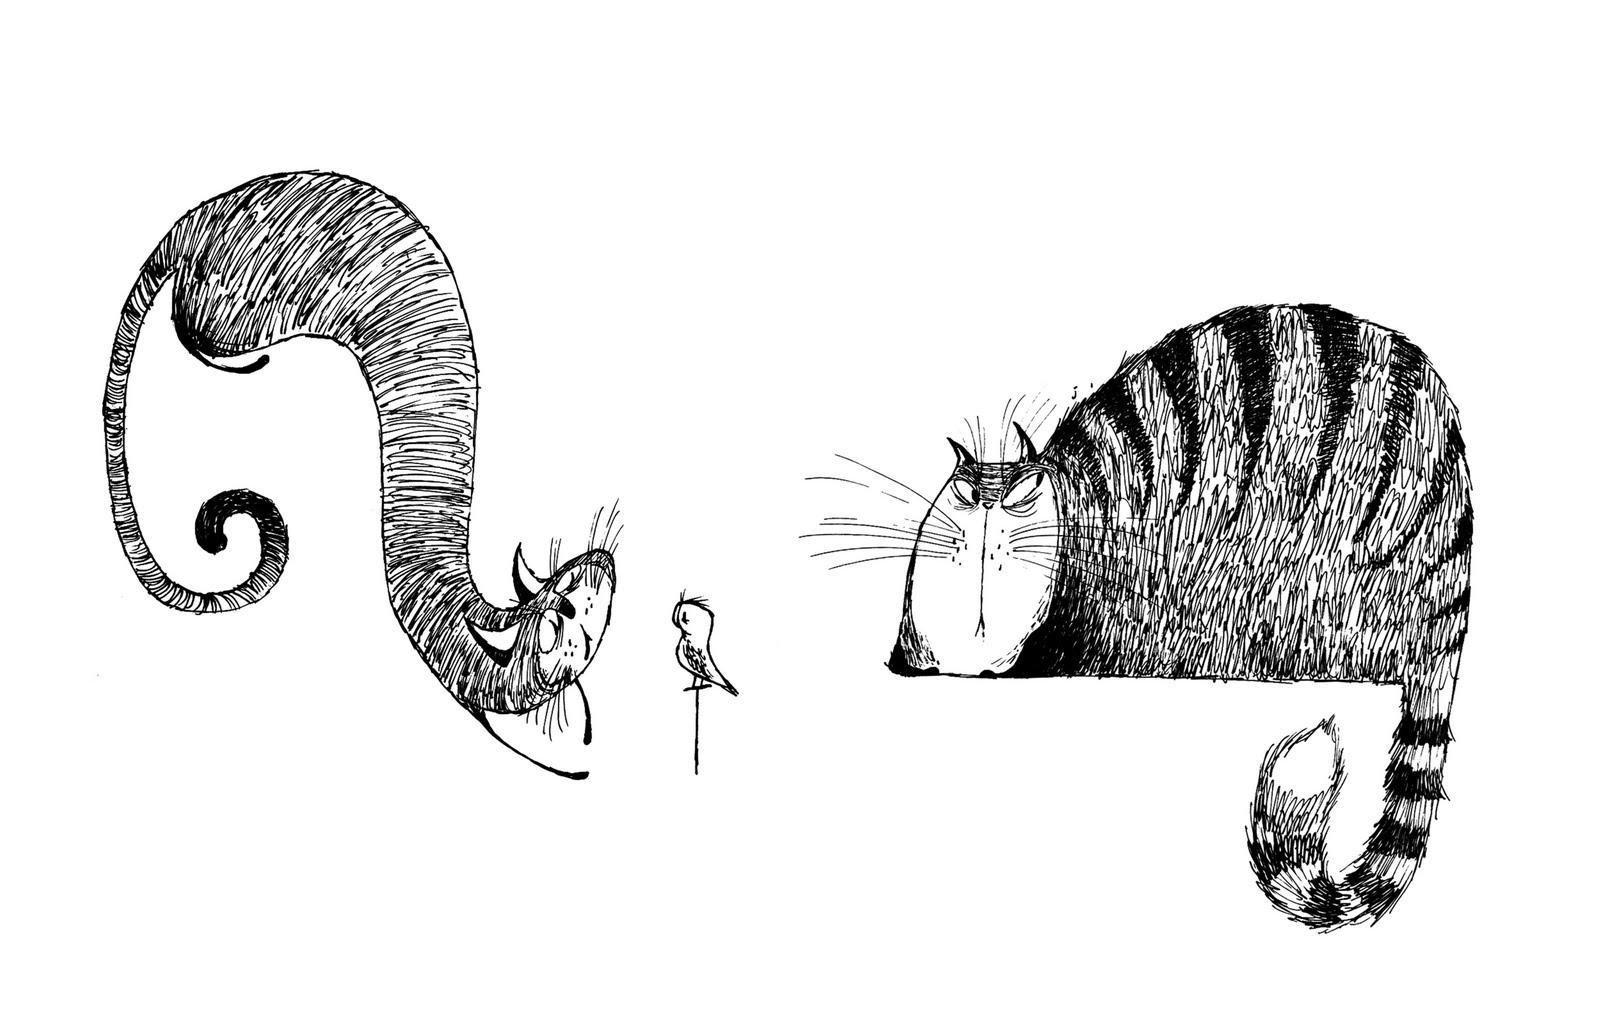 cat+drawings+03.jpg (1600×1035)